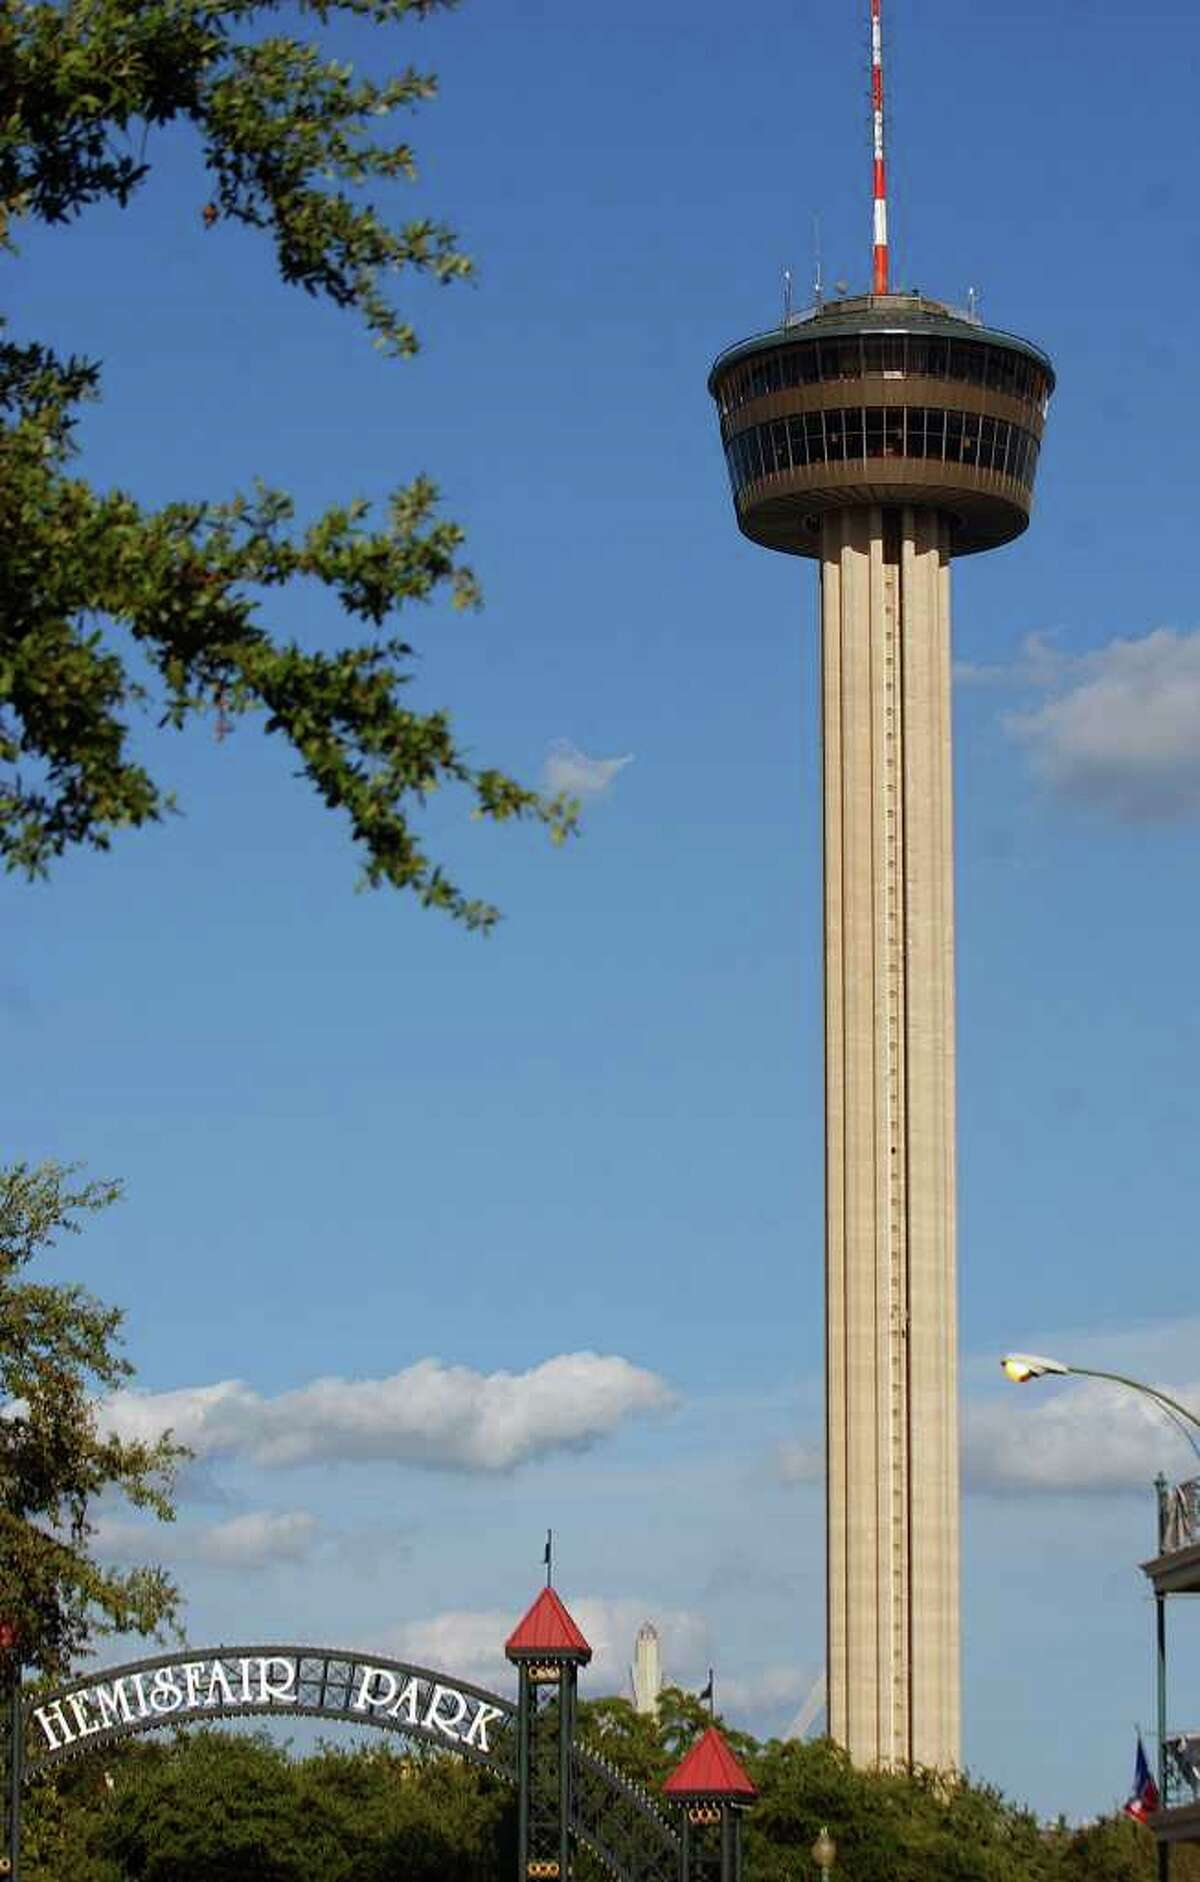 A view of the Tower of the Americas and the Hemisfair Park sign Friday June 16, 2006.